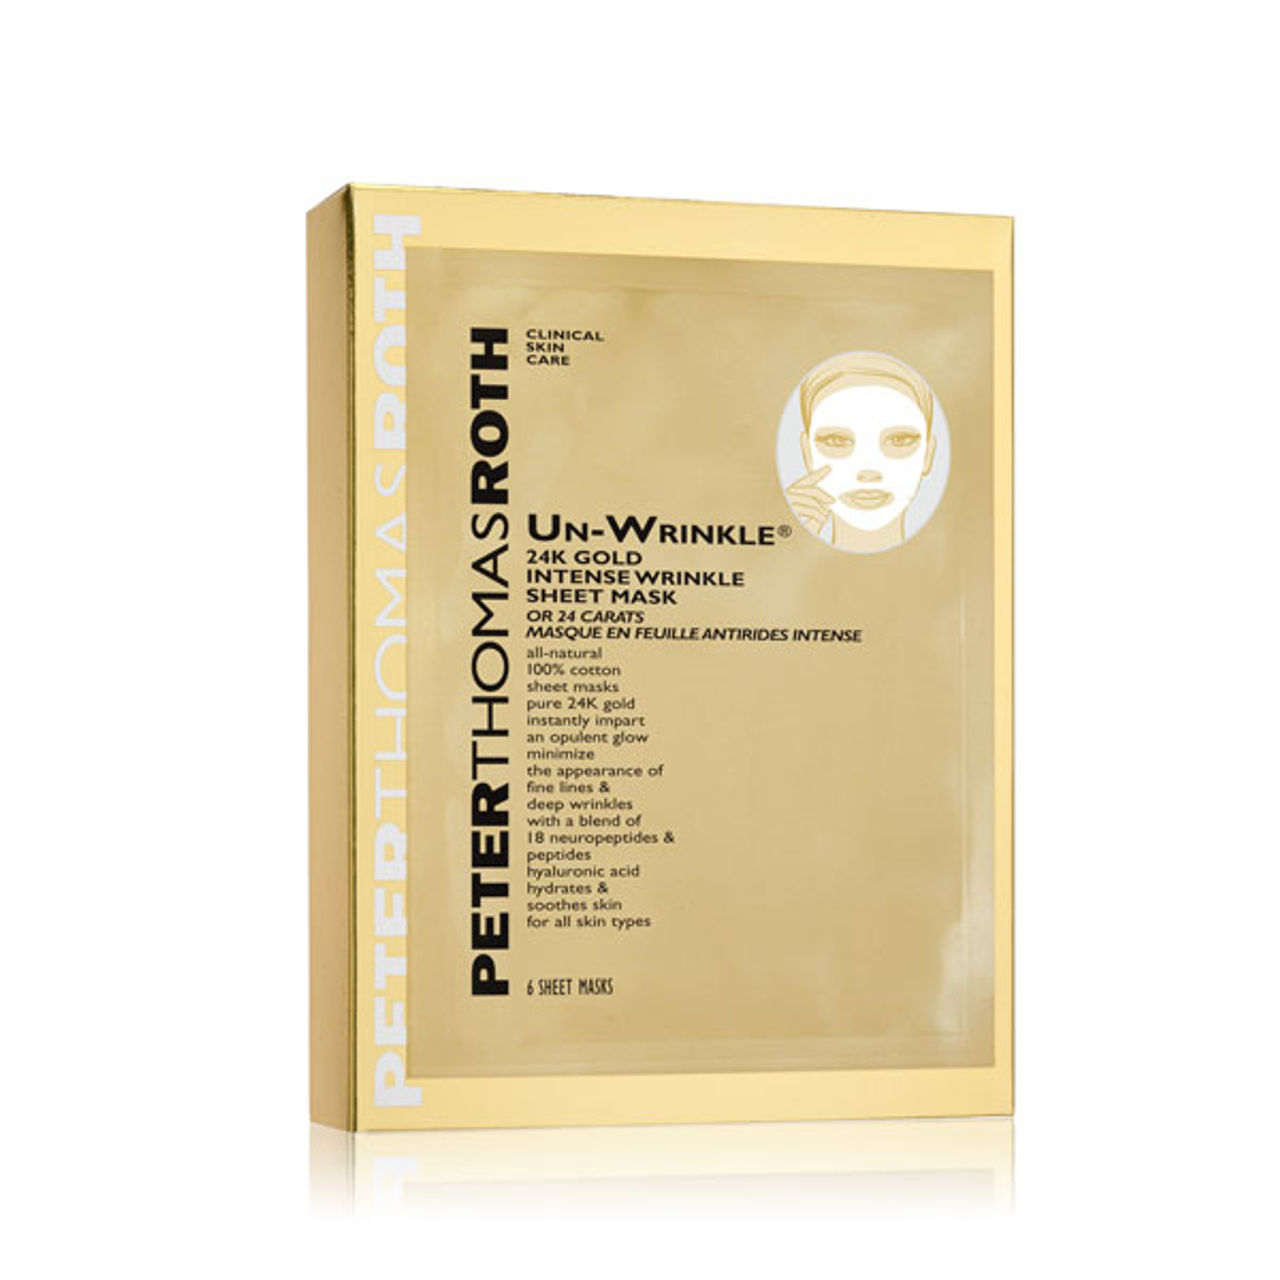 Peter Thomas Roth Un-Wrinkle® 24K Gold Intense Sheet Mask***DISCONTINUED***